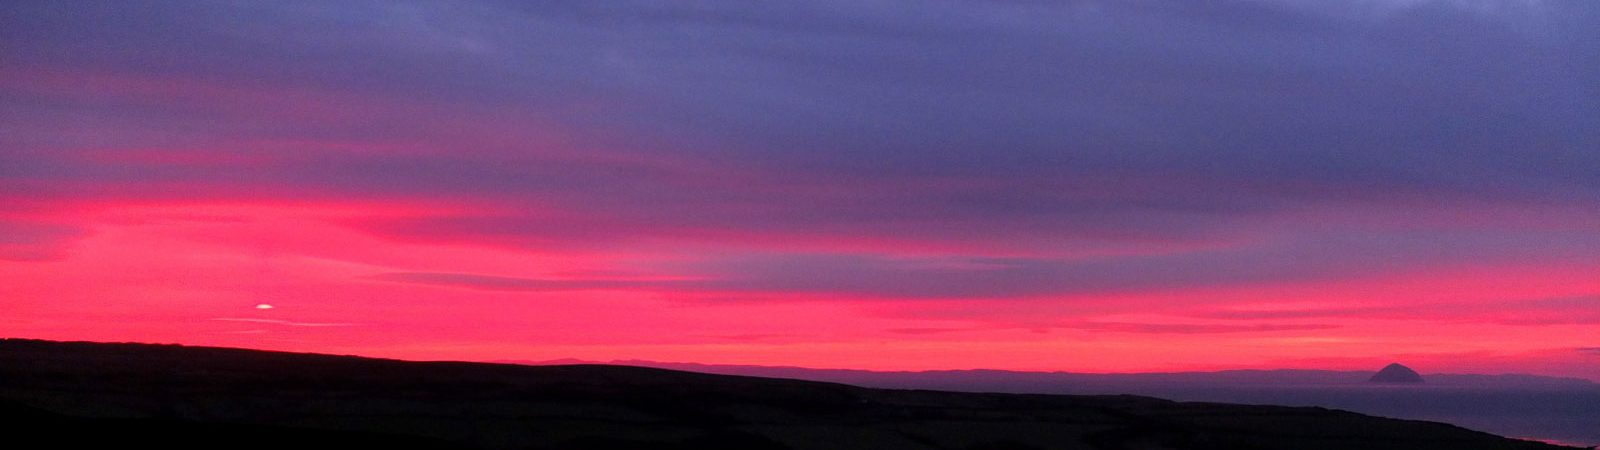 Arran view of the red sky